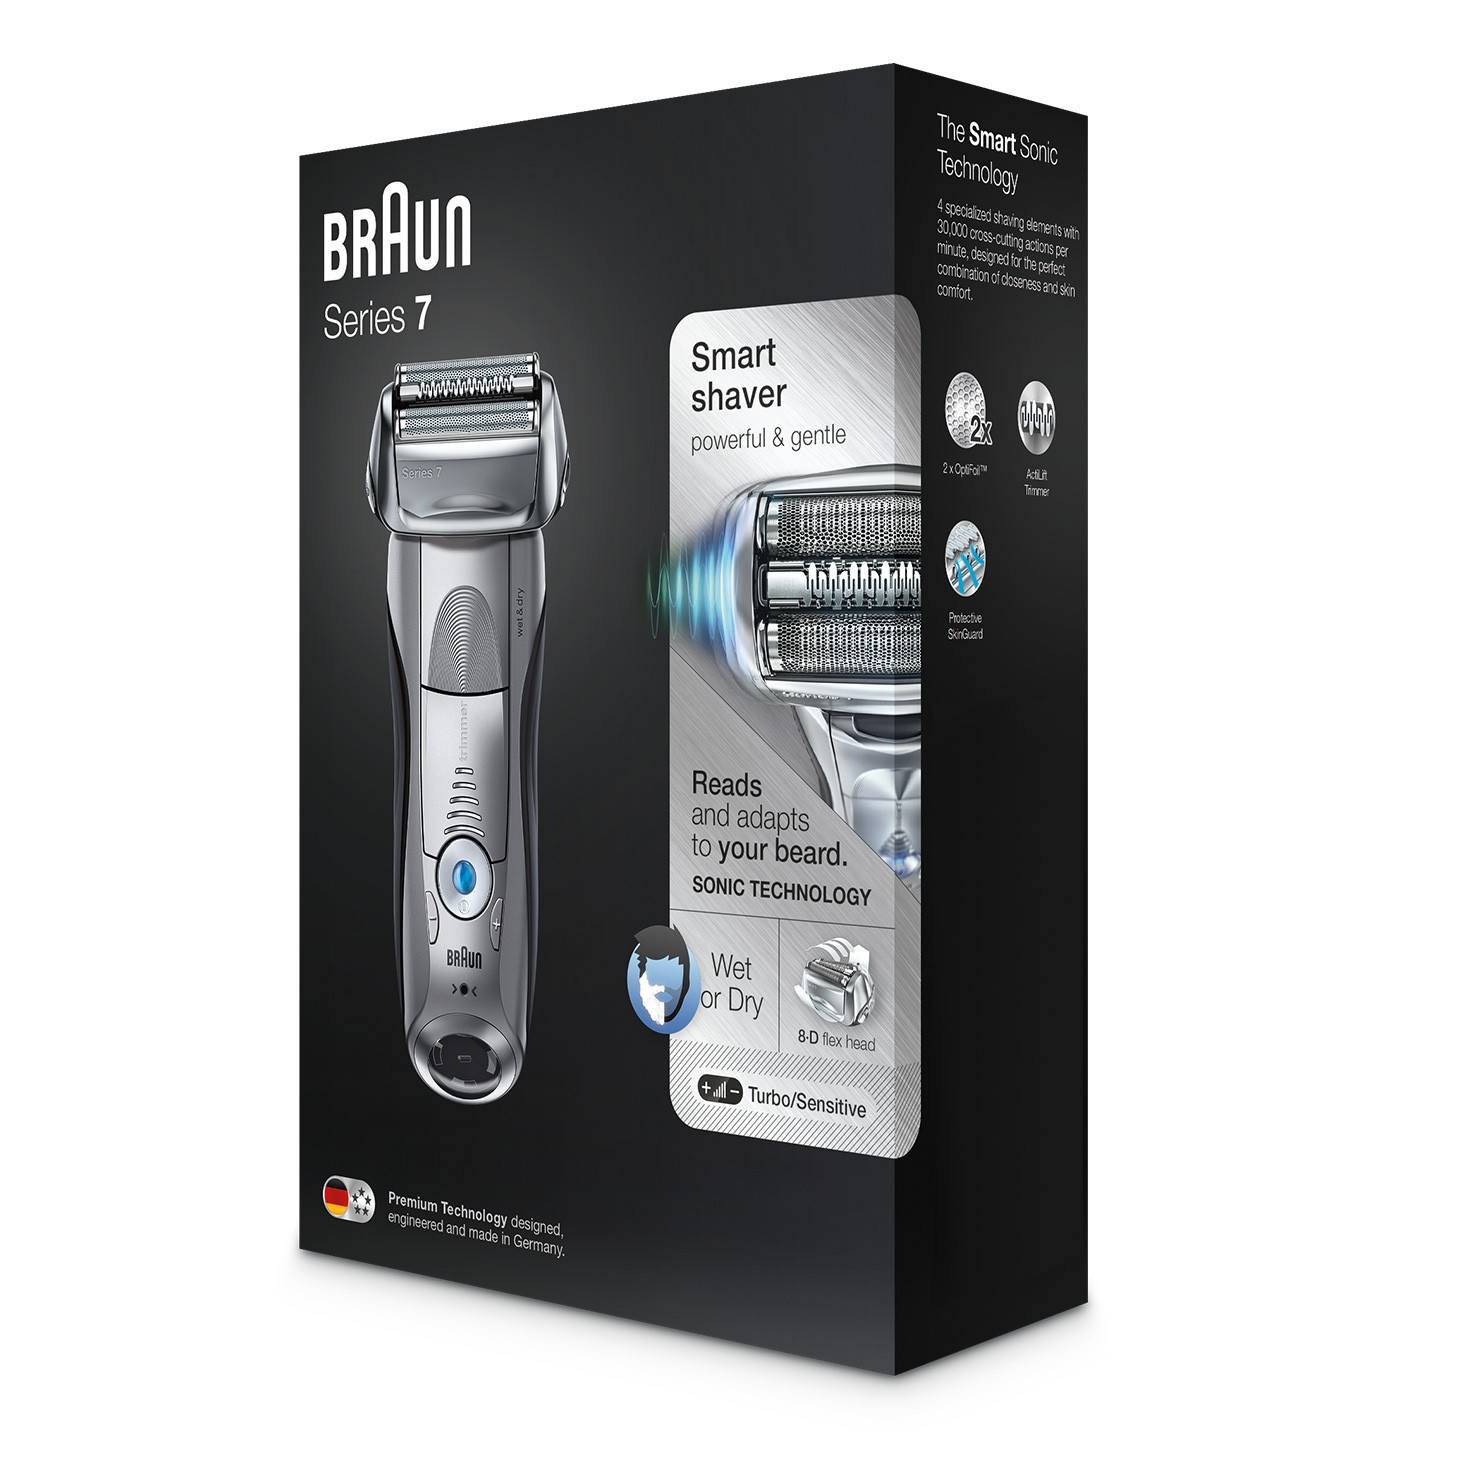 Braun Series 7 silver electric shaver packaging